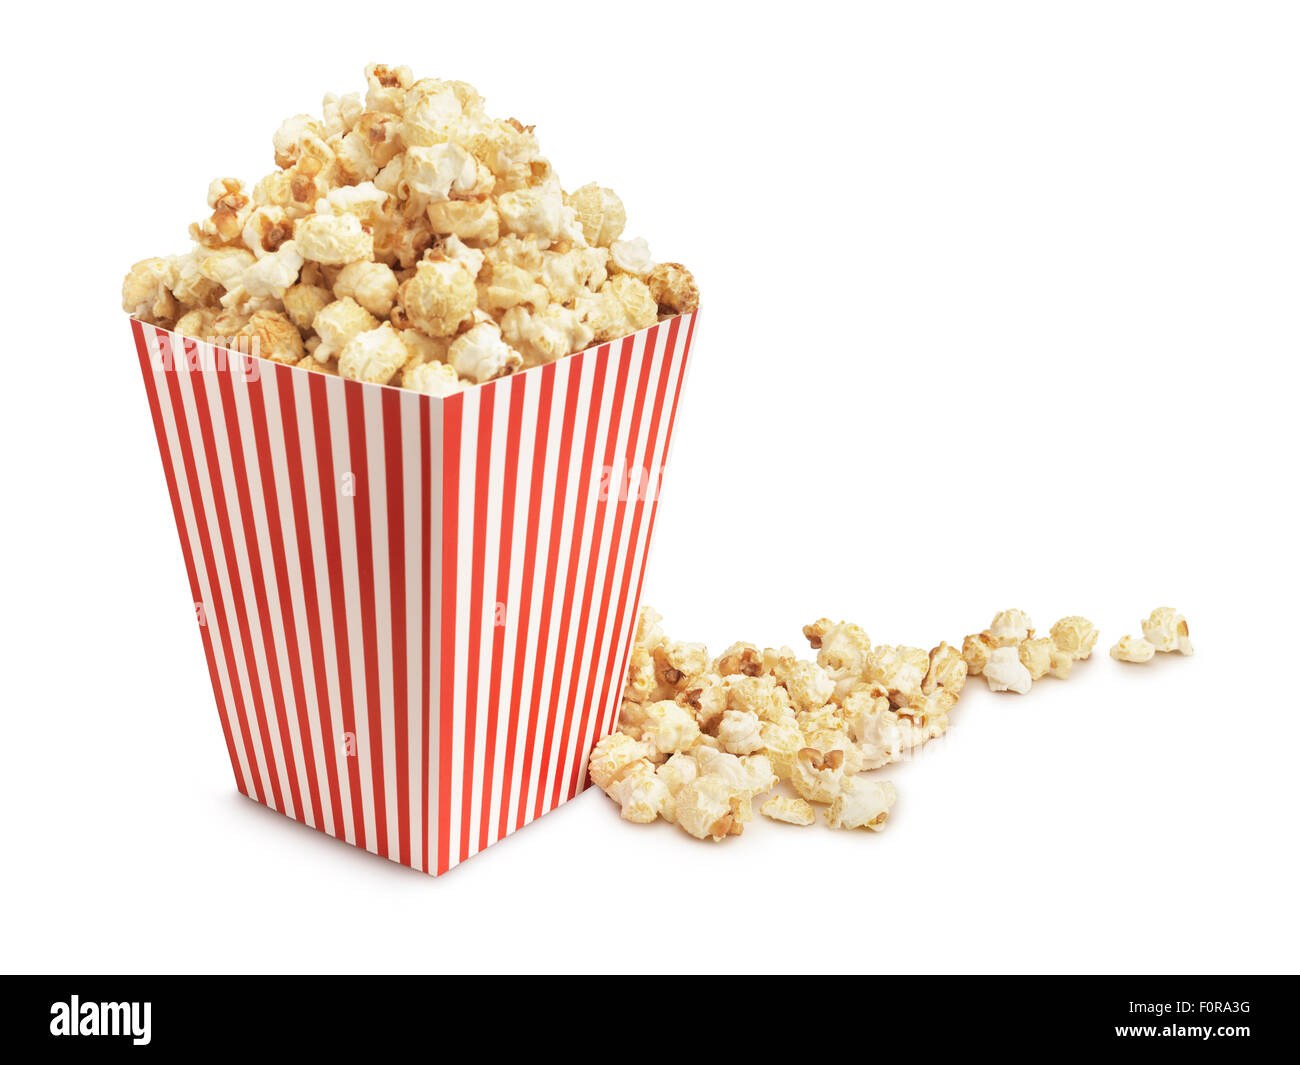 Cinema popcorn on a white background with clipping path - Stock Image